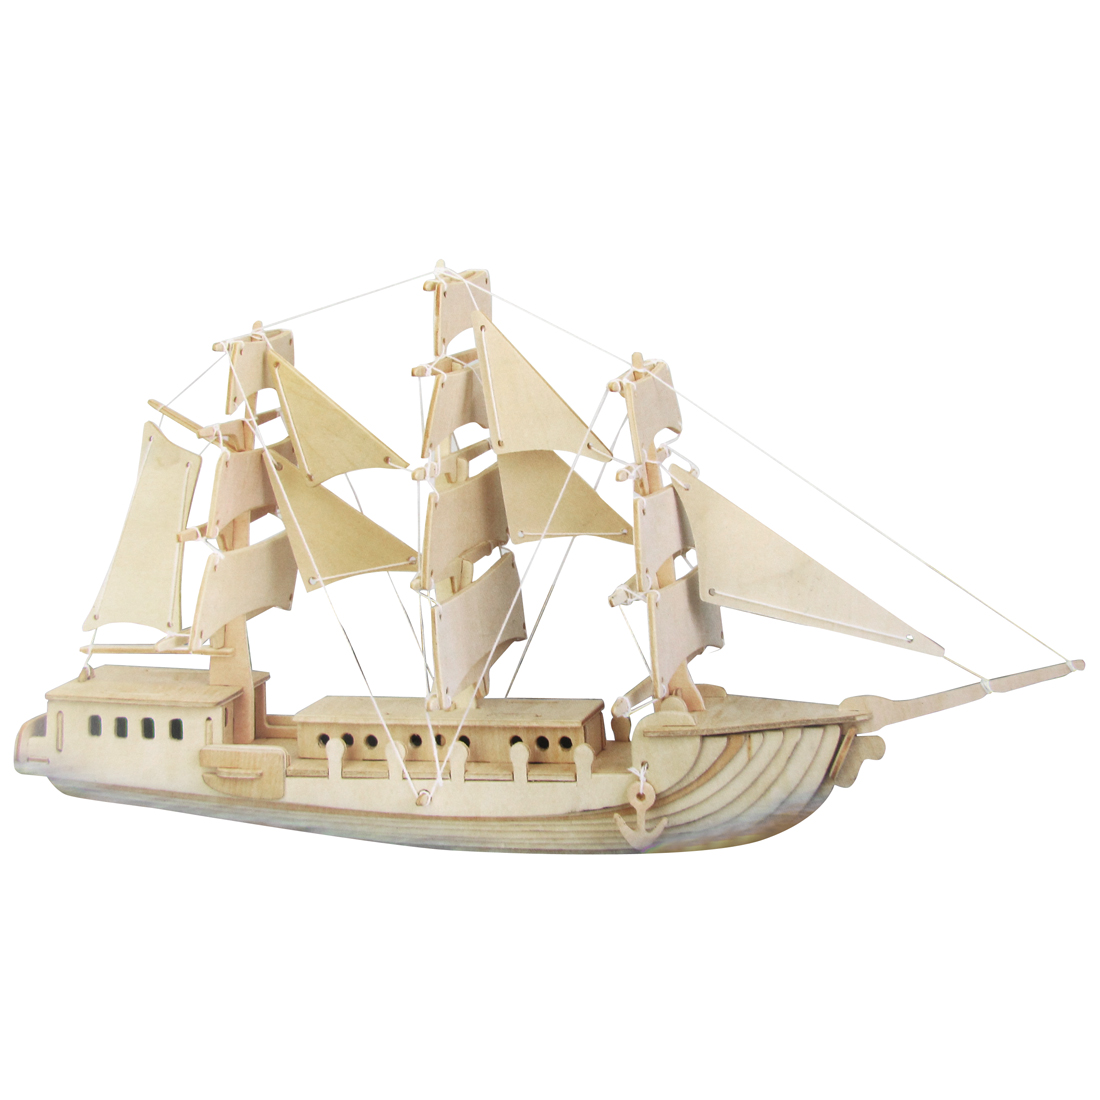 Woodcraft Construction Kit Wooden European Sailing Boat Model Puzzle Toy